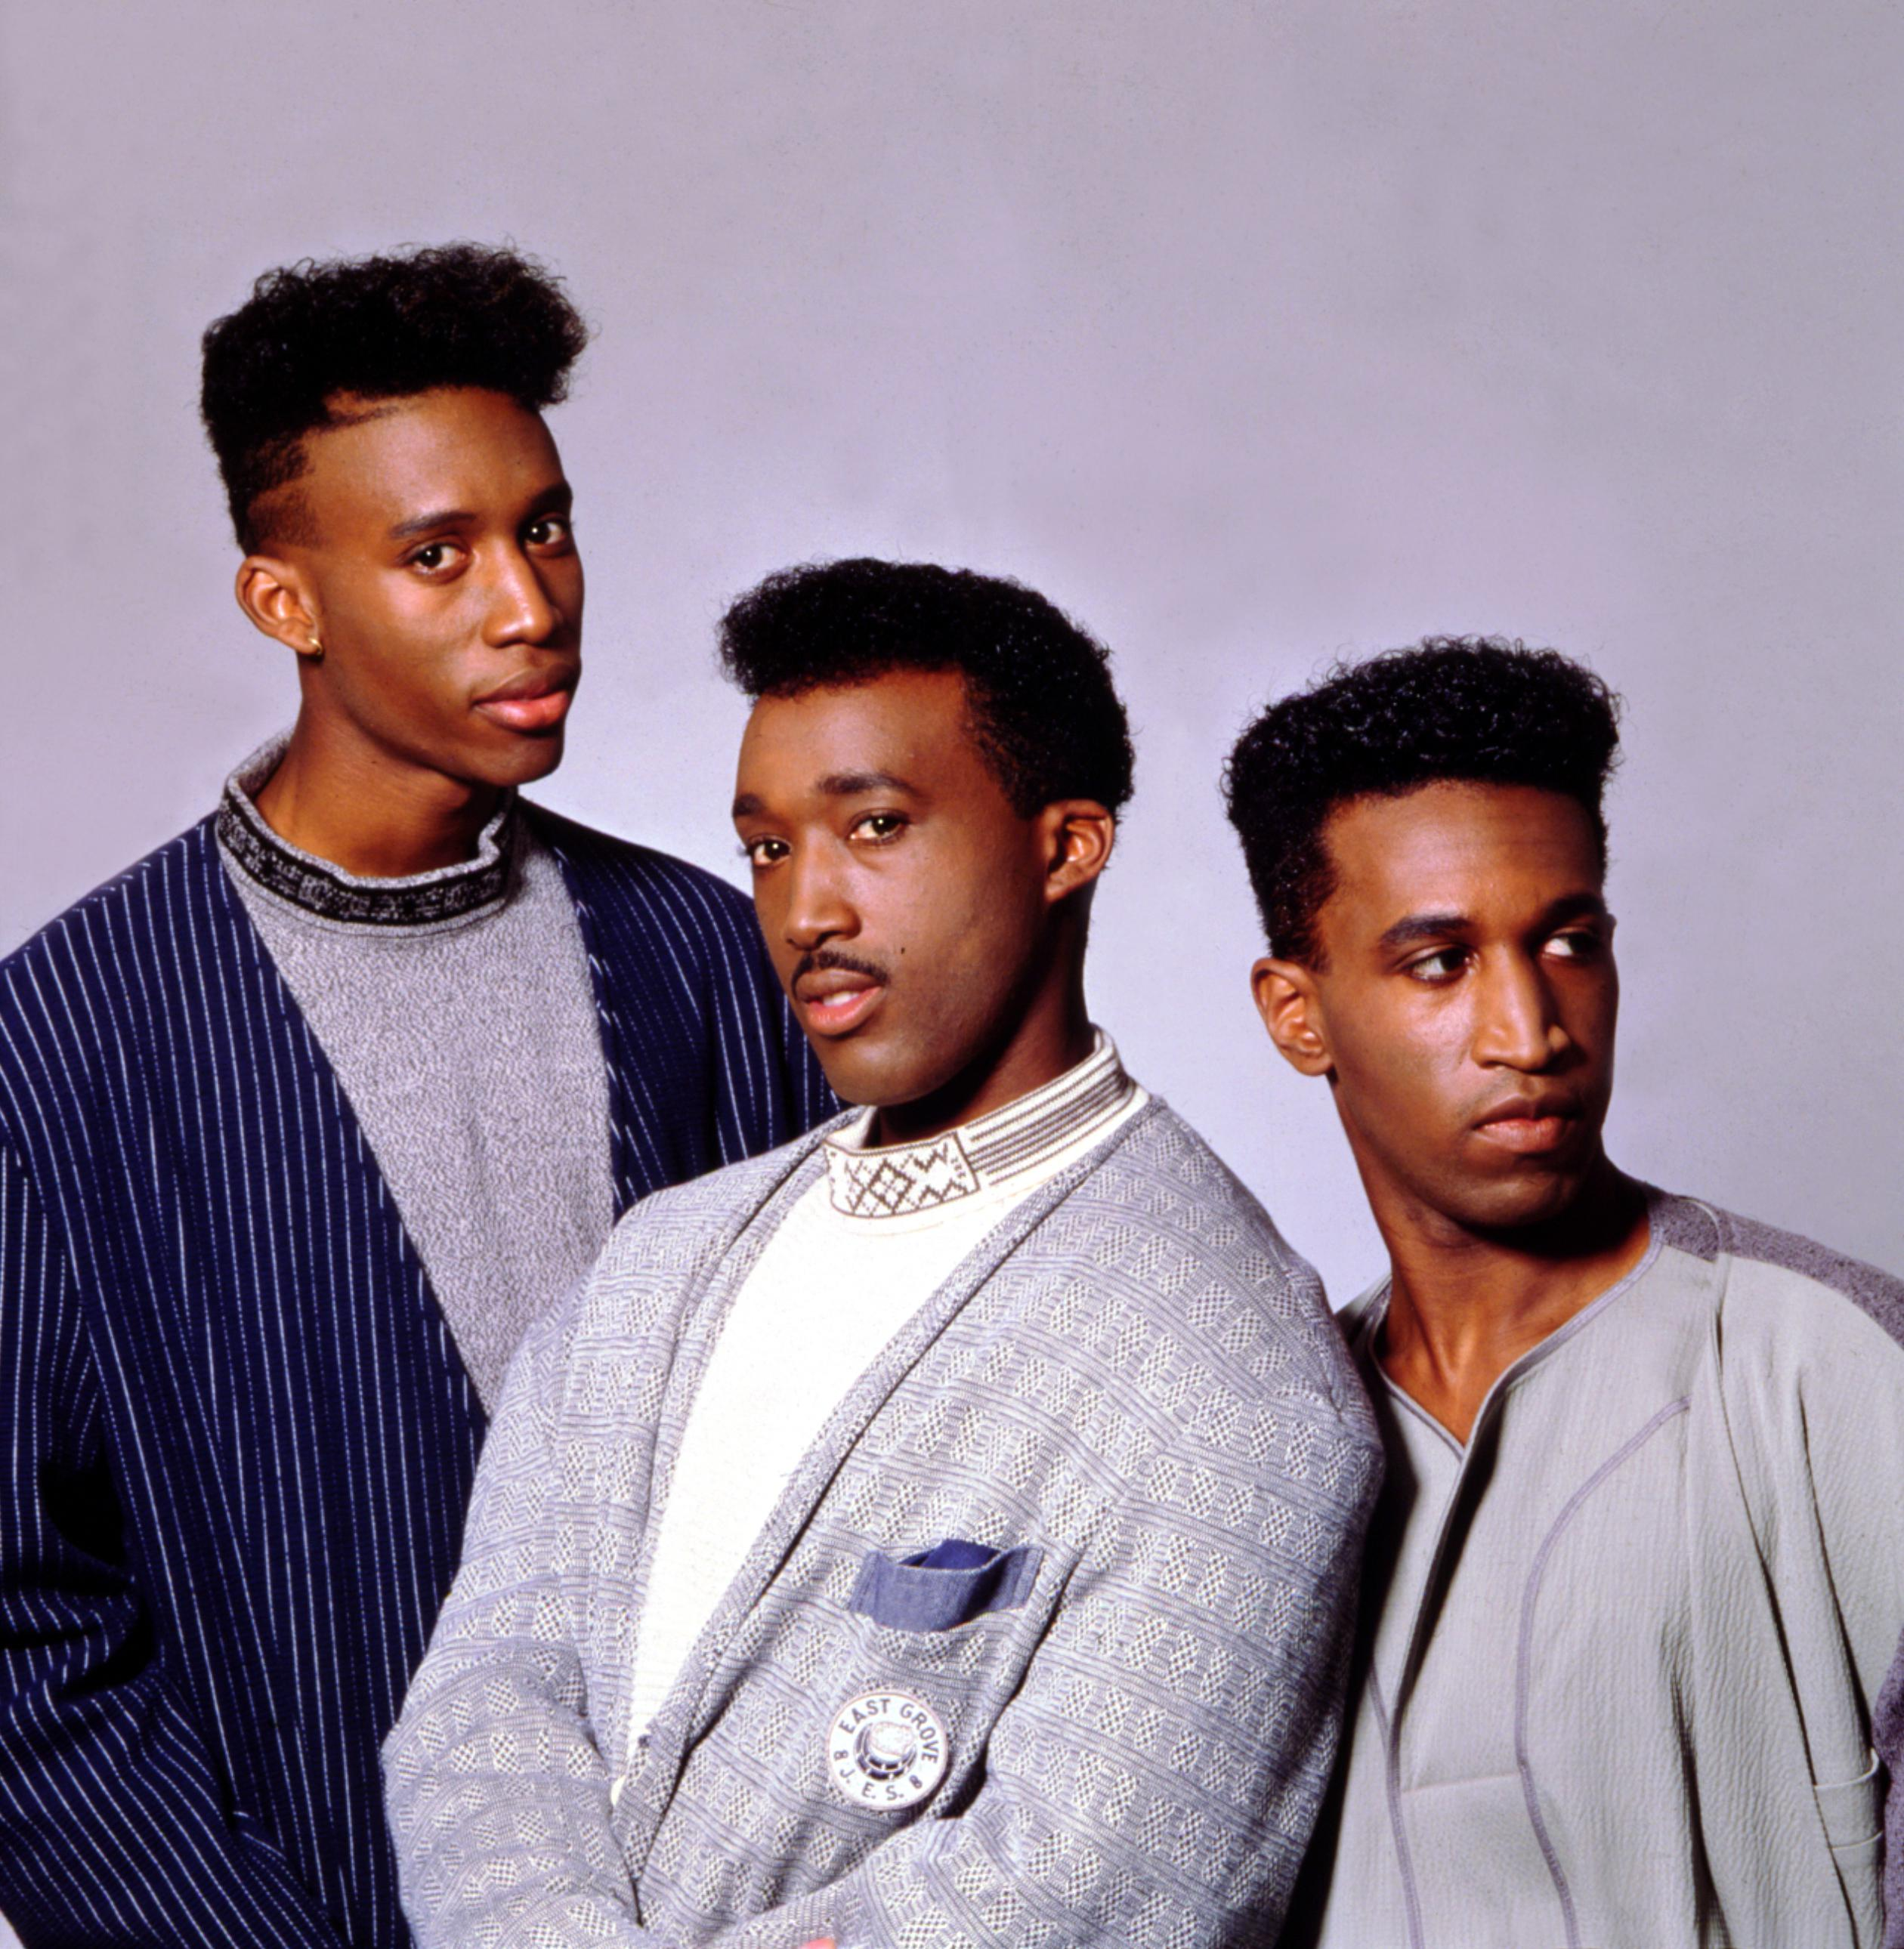 Photo of Tony Toni Tone